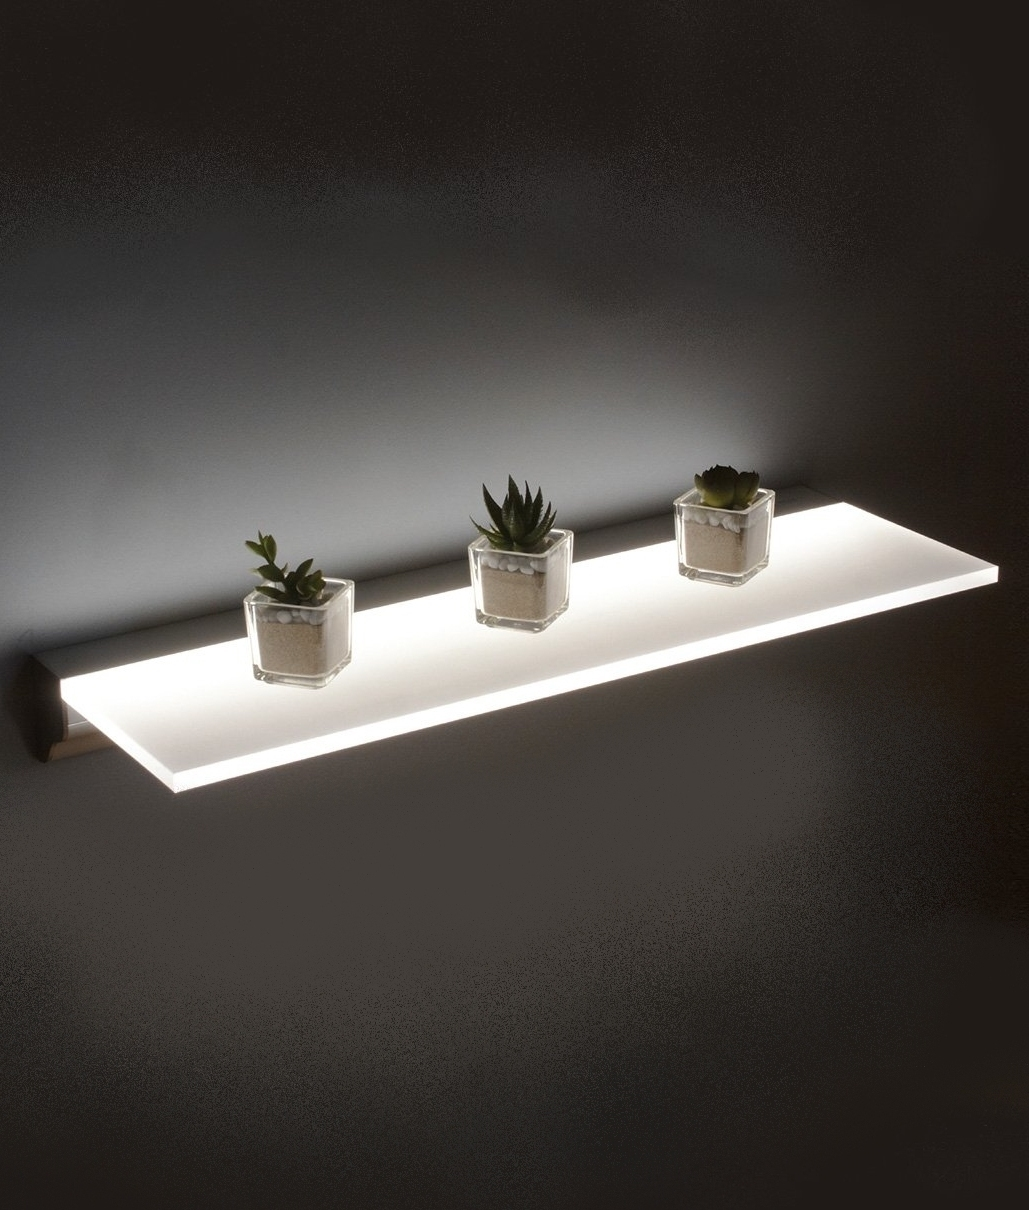 Led Opal Illuminated Shelf Two Sizes Regarding Illuminated Glass Shelves (#8 of 12)